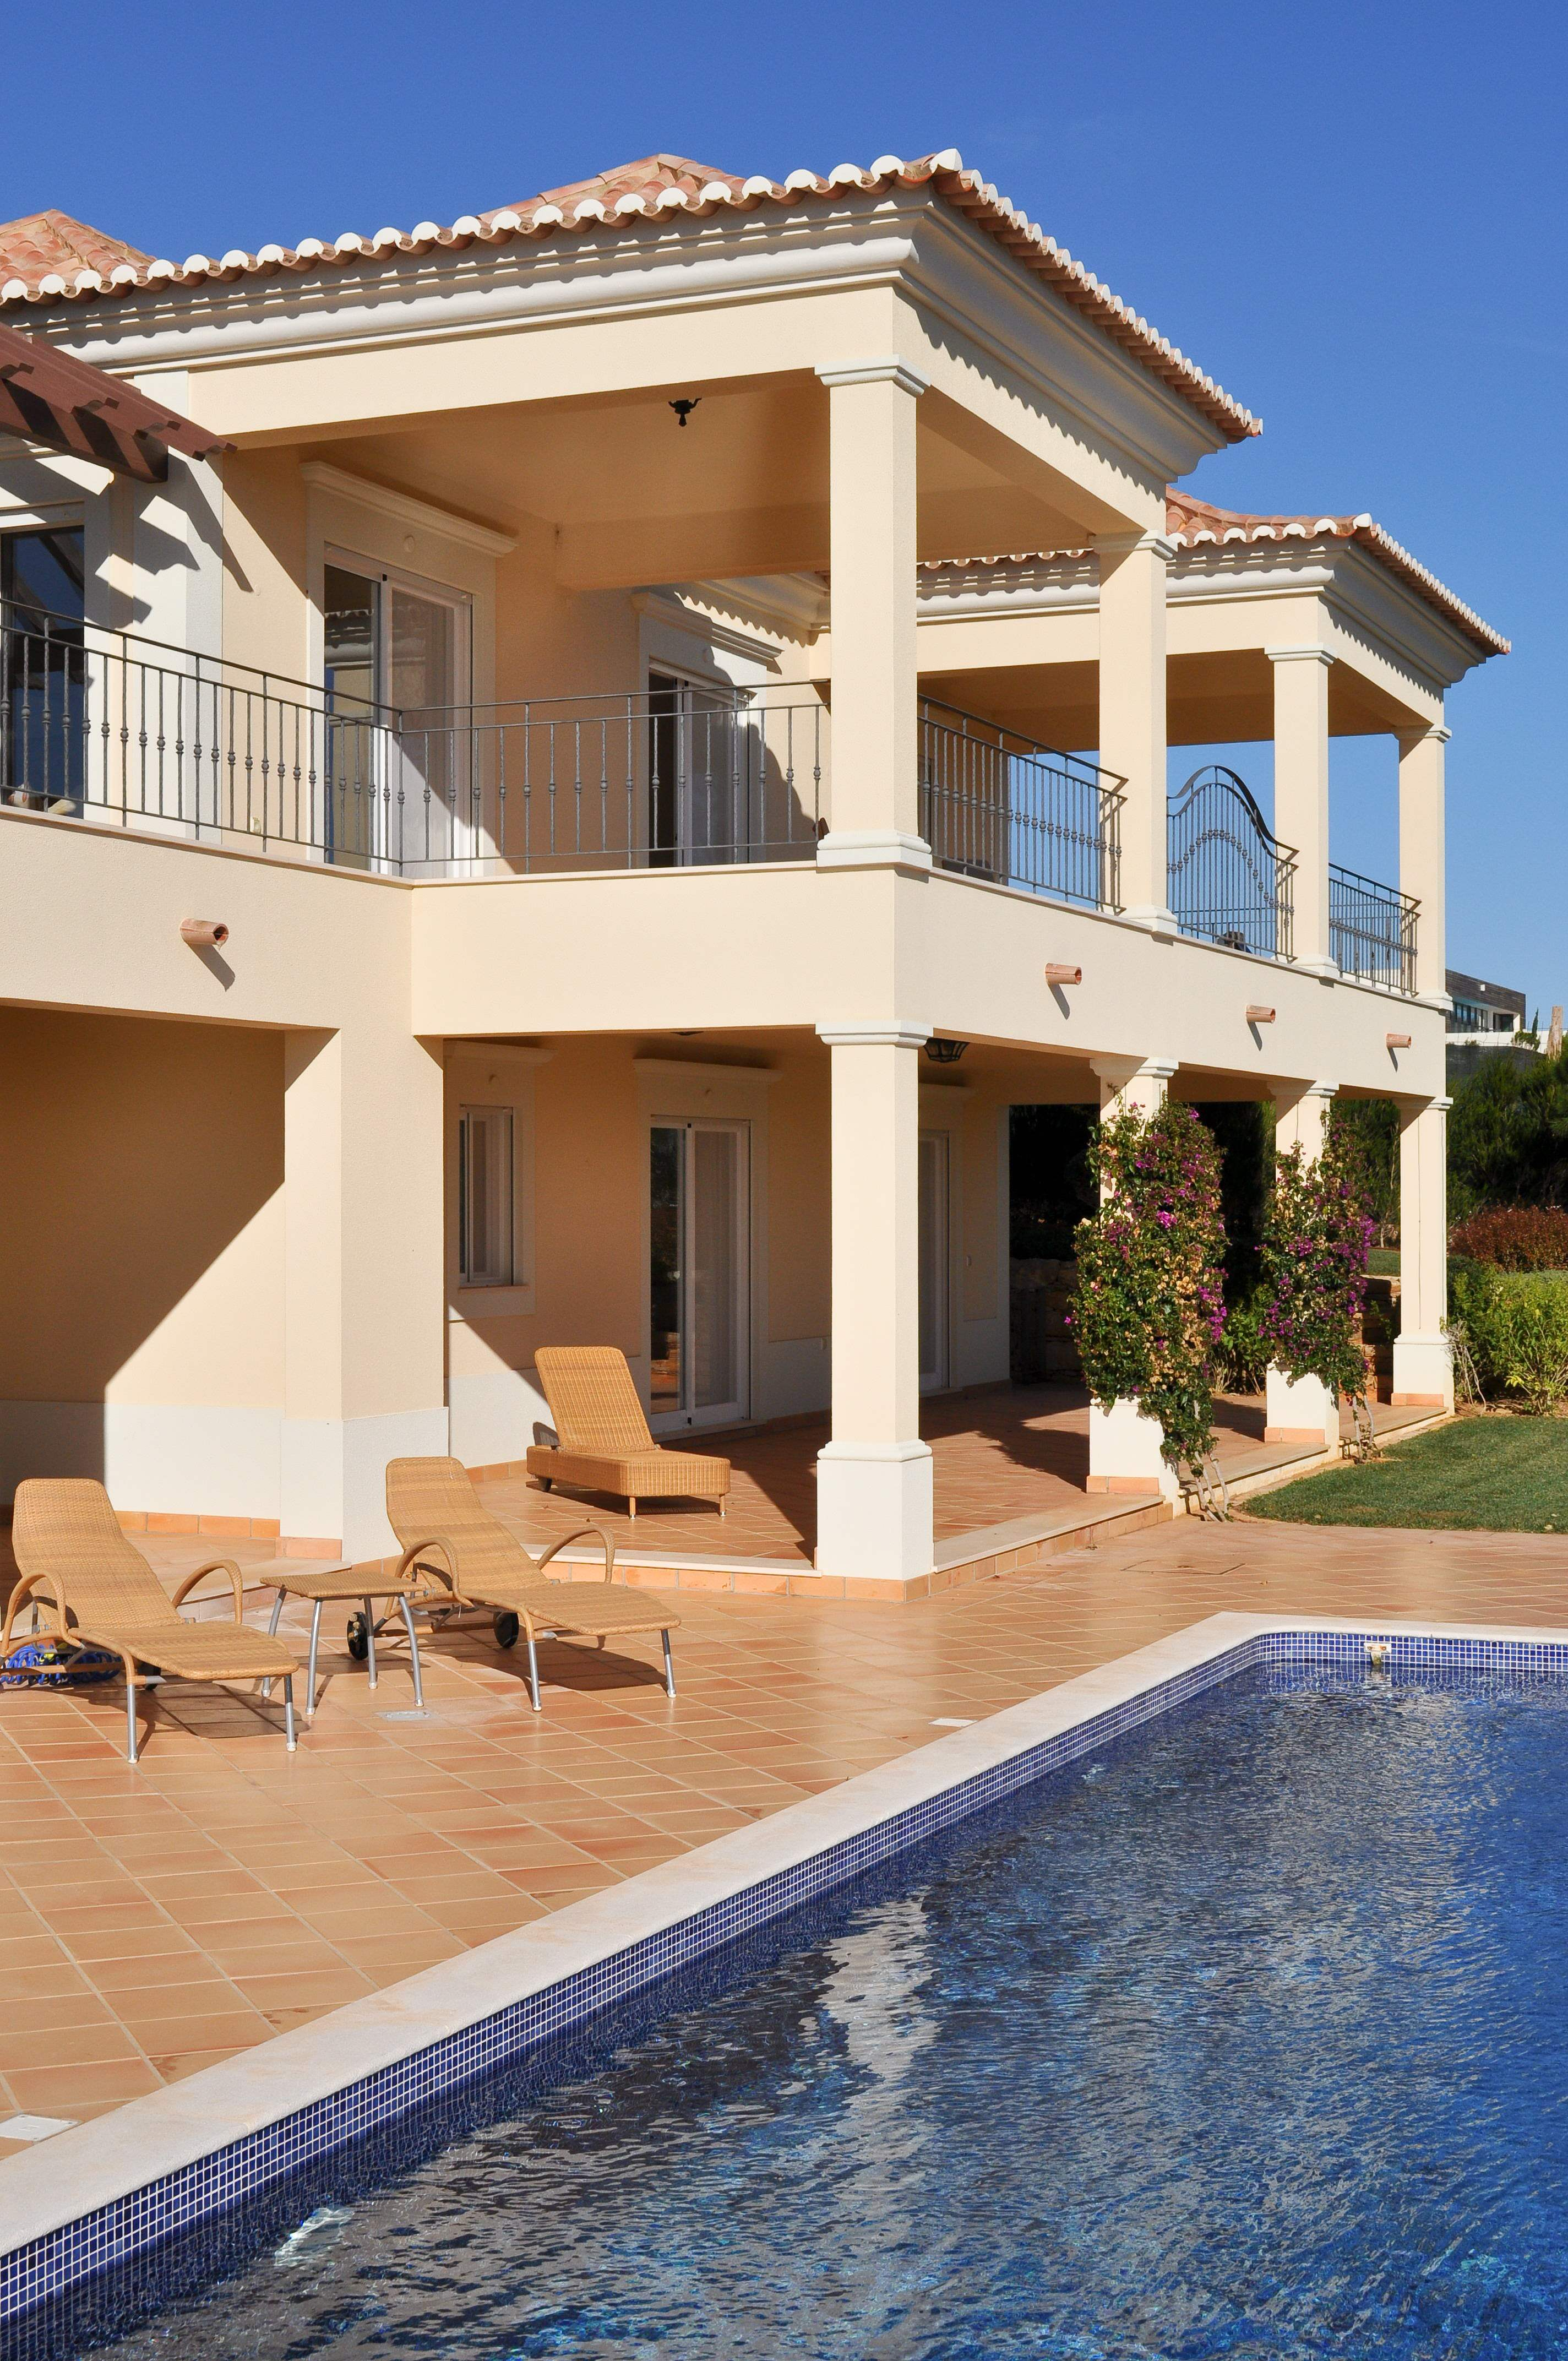 Martinhal Luxury Villa No.32, Three bedroom villa, 3 bedroom villa in Martinhal Sagres, Algarve Photo #3